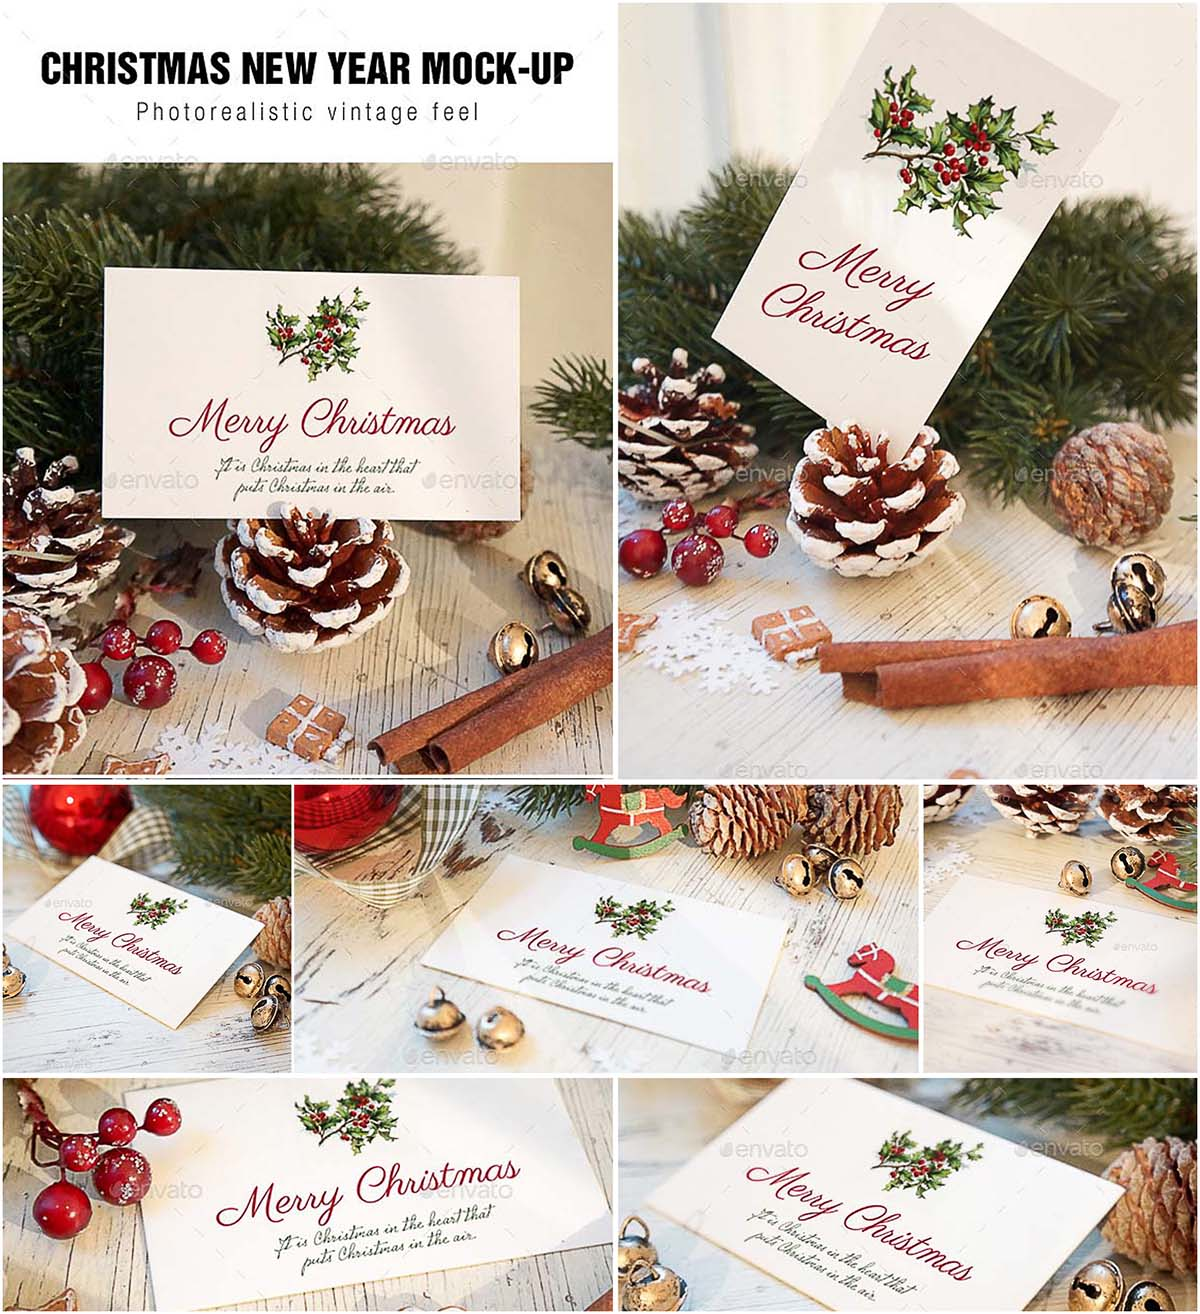 Christmas and new year greetings images free download